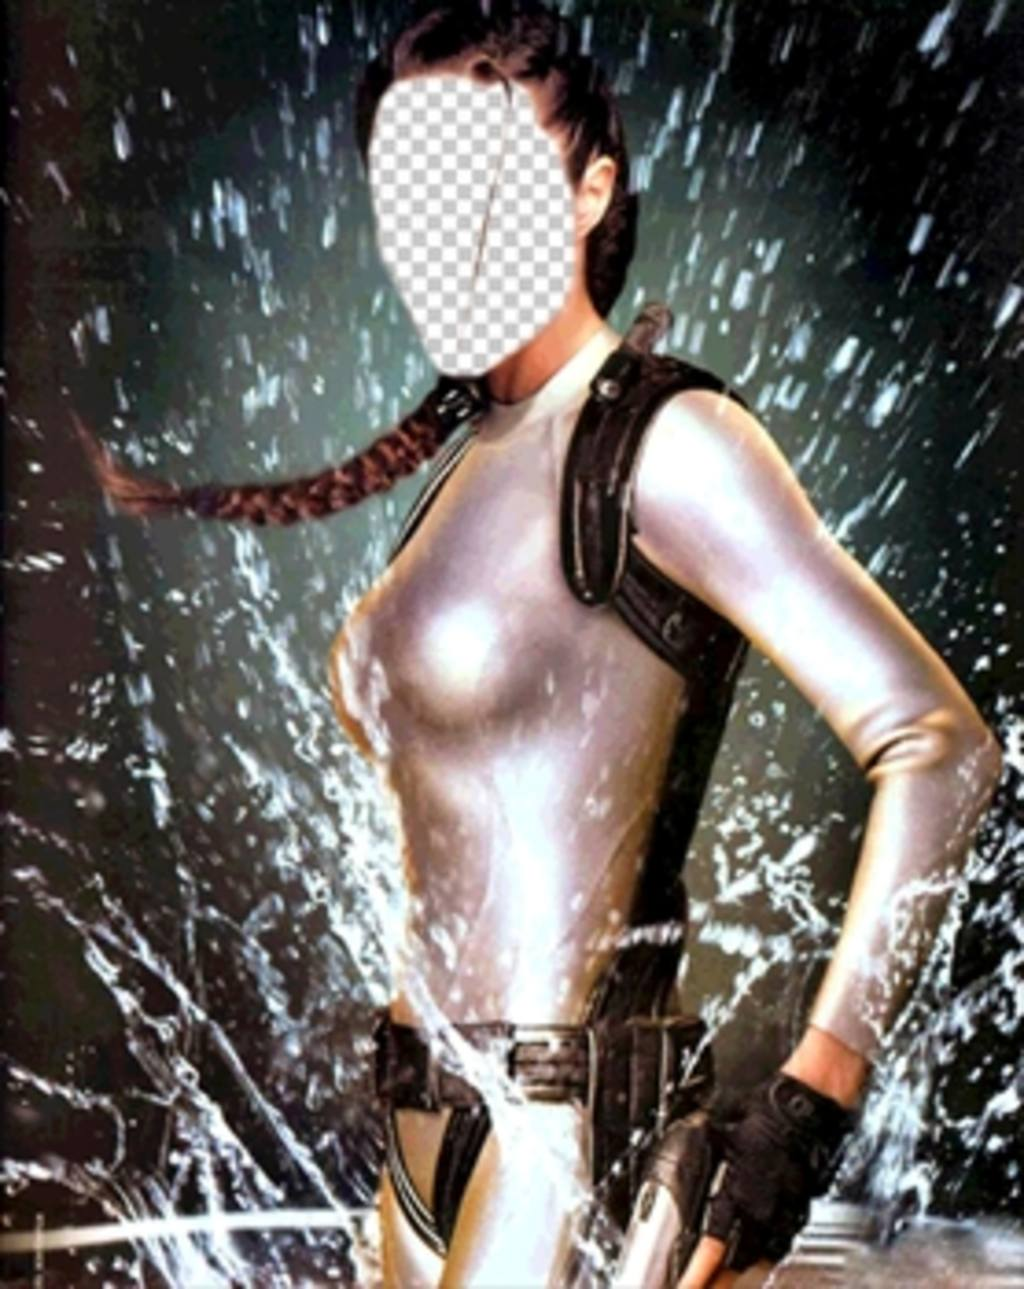 Become in the adventurer Lara Croft with this effect to edit